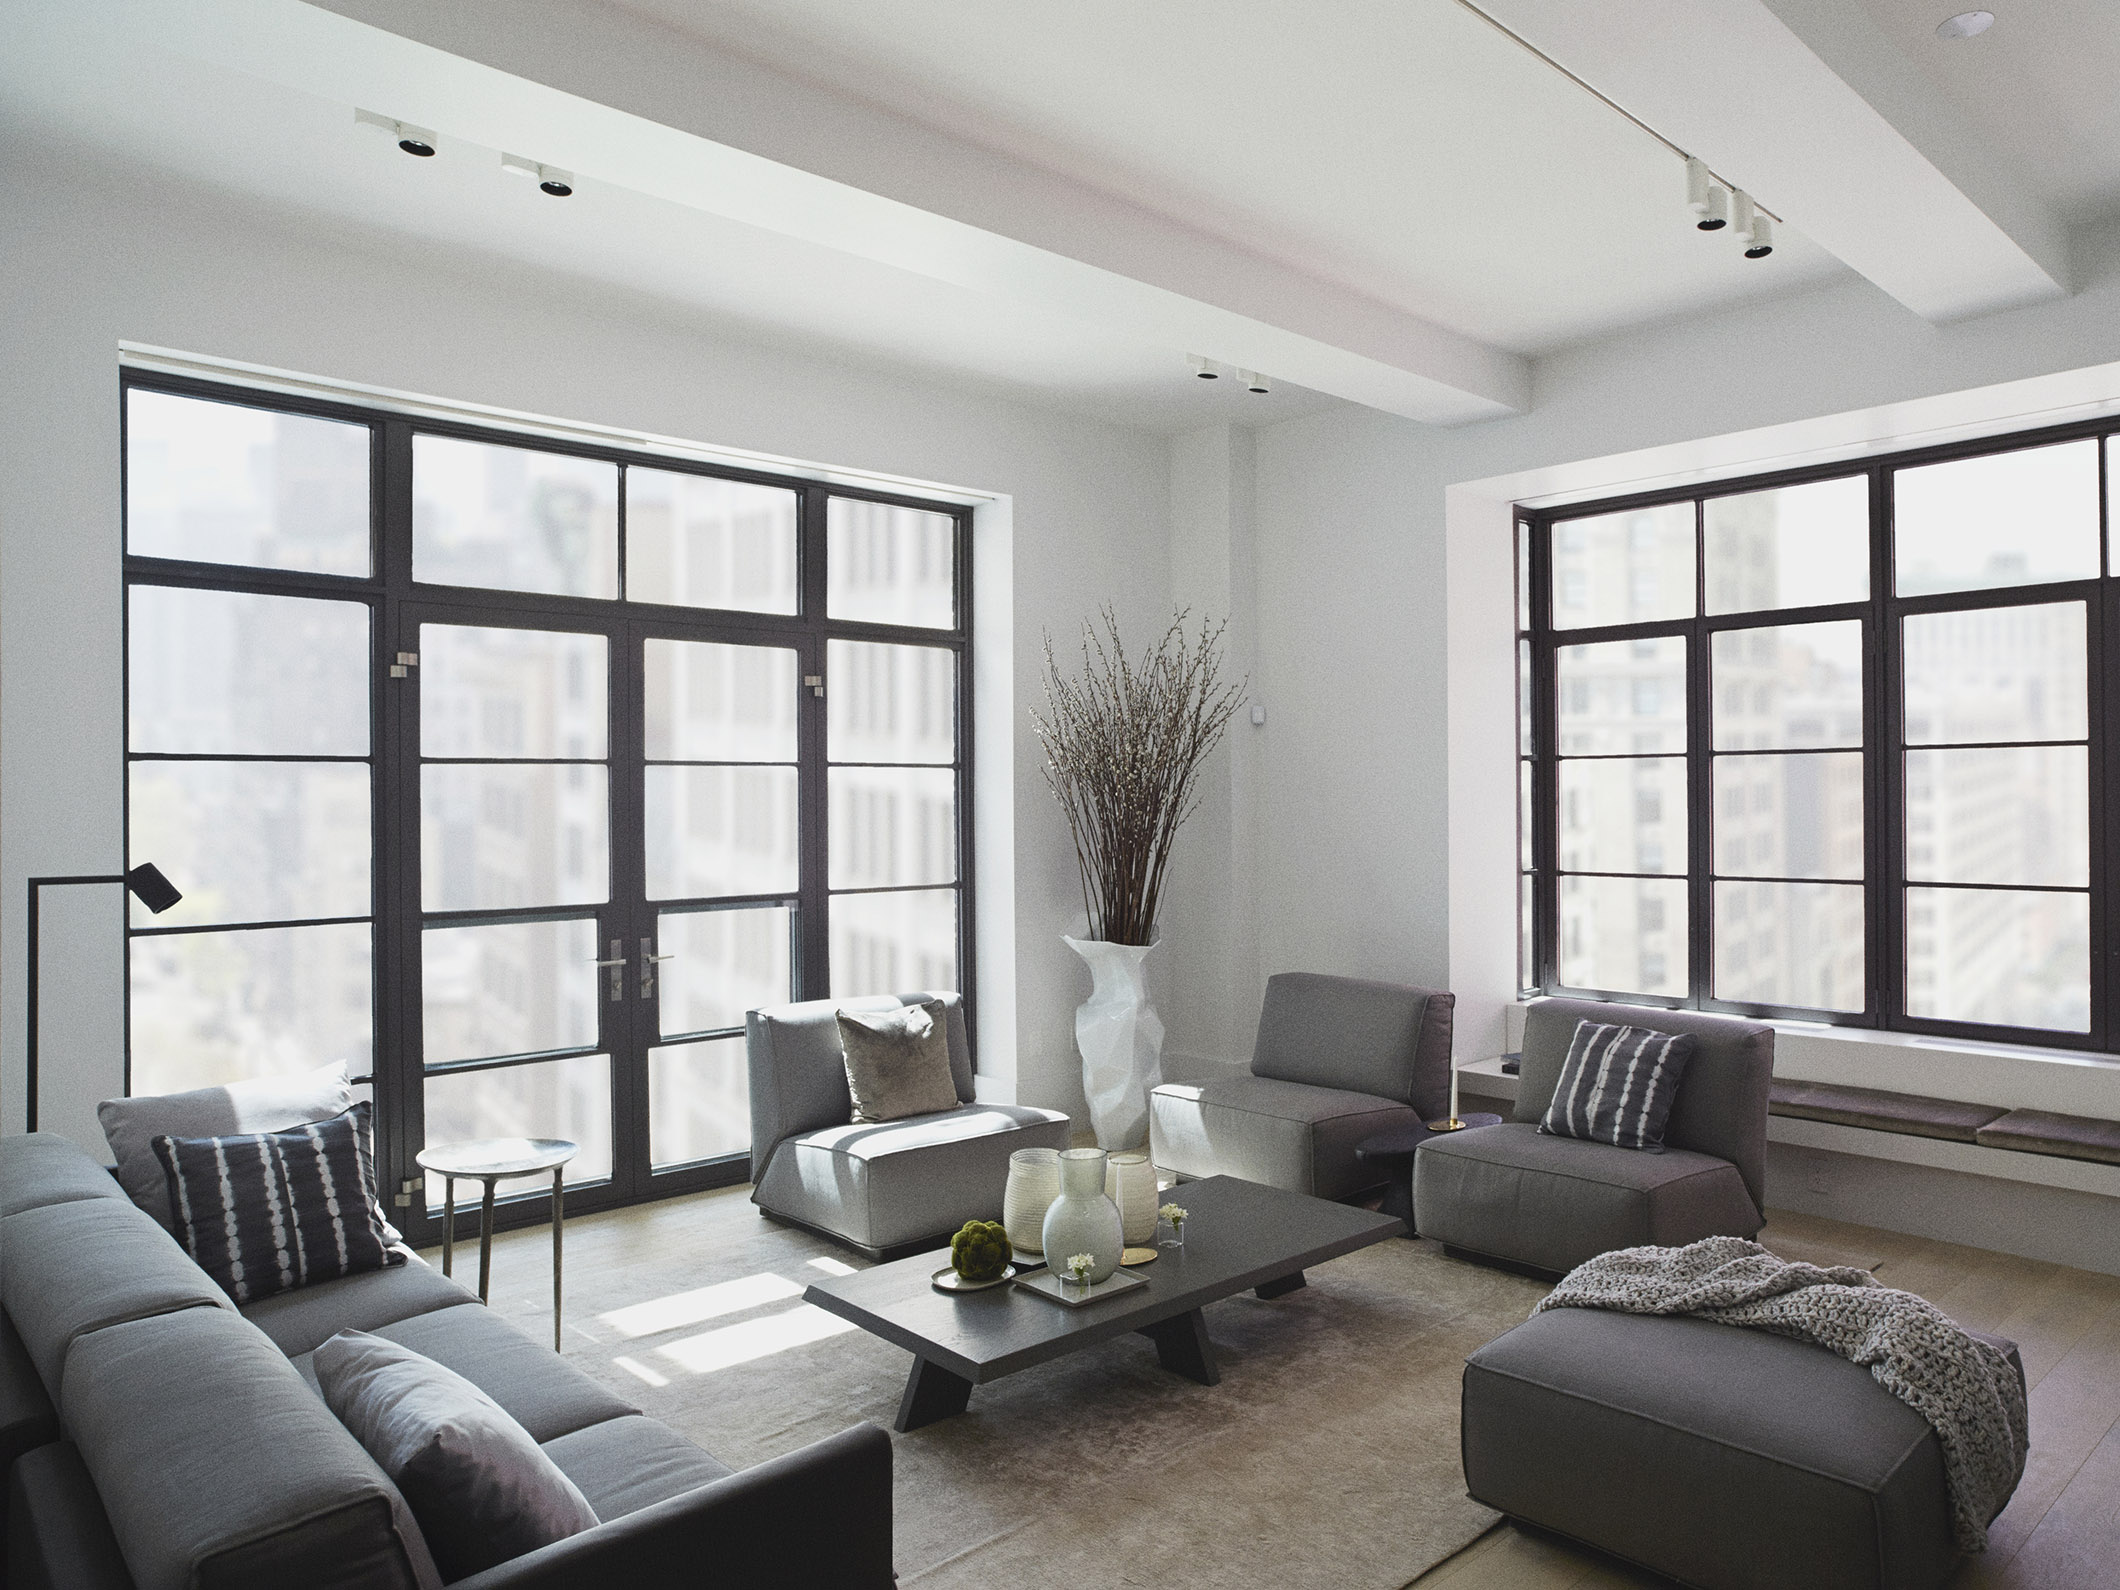 DOUTZEN sofa, armchair and pouf, ITSKE coffee table and Maretti tribe at Huys 404 model apartment